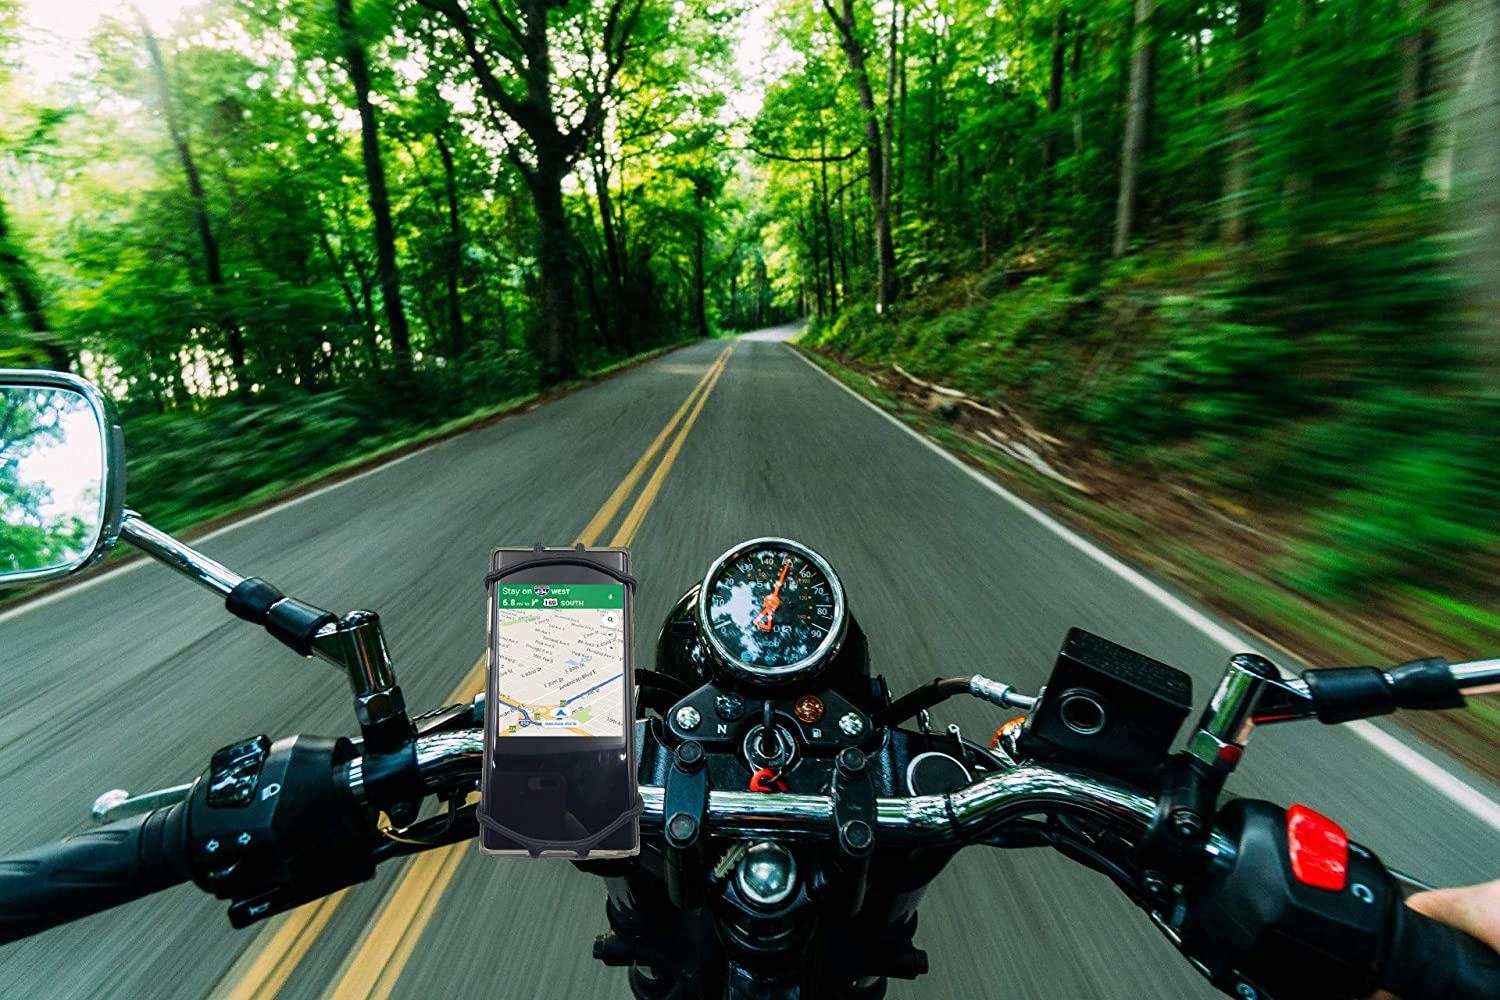 Galaxy S20//S9 Universal Motorcycle Handlebar Mount Fits for iPhone 11 Pro Max//XR//XS Max//8//7// 6//6s Plus SEARCH 2 BUY Bike Phone Mount 360/°Rotation Silicone Bicycle Phone Holder 4.0-6.0 Phones